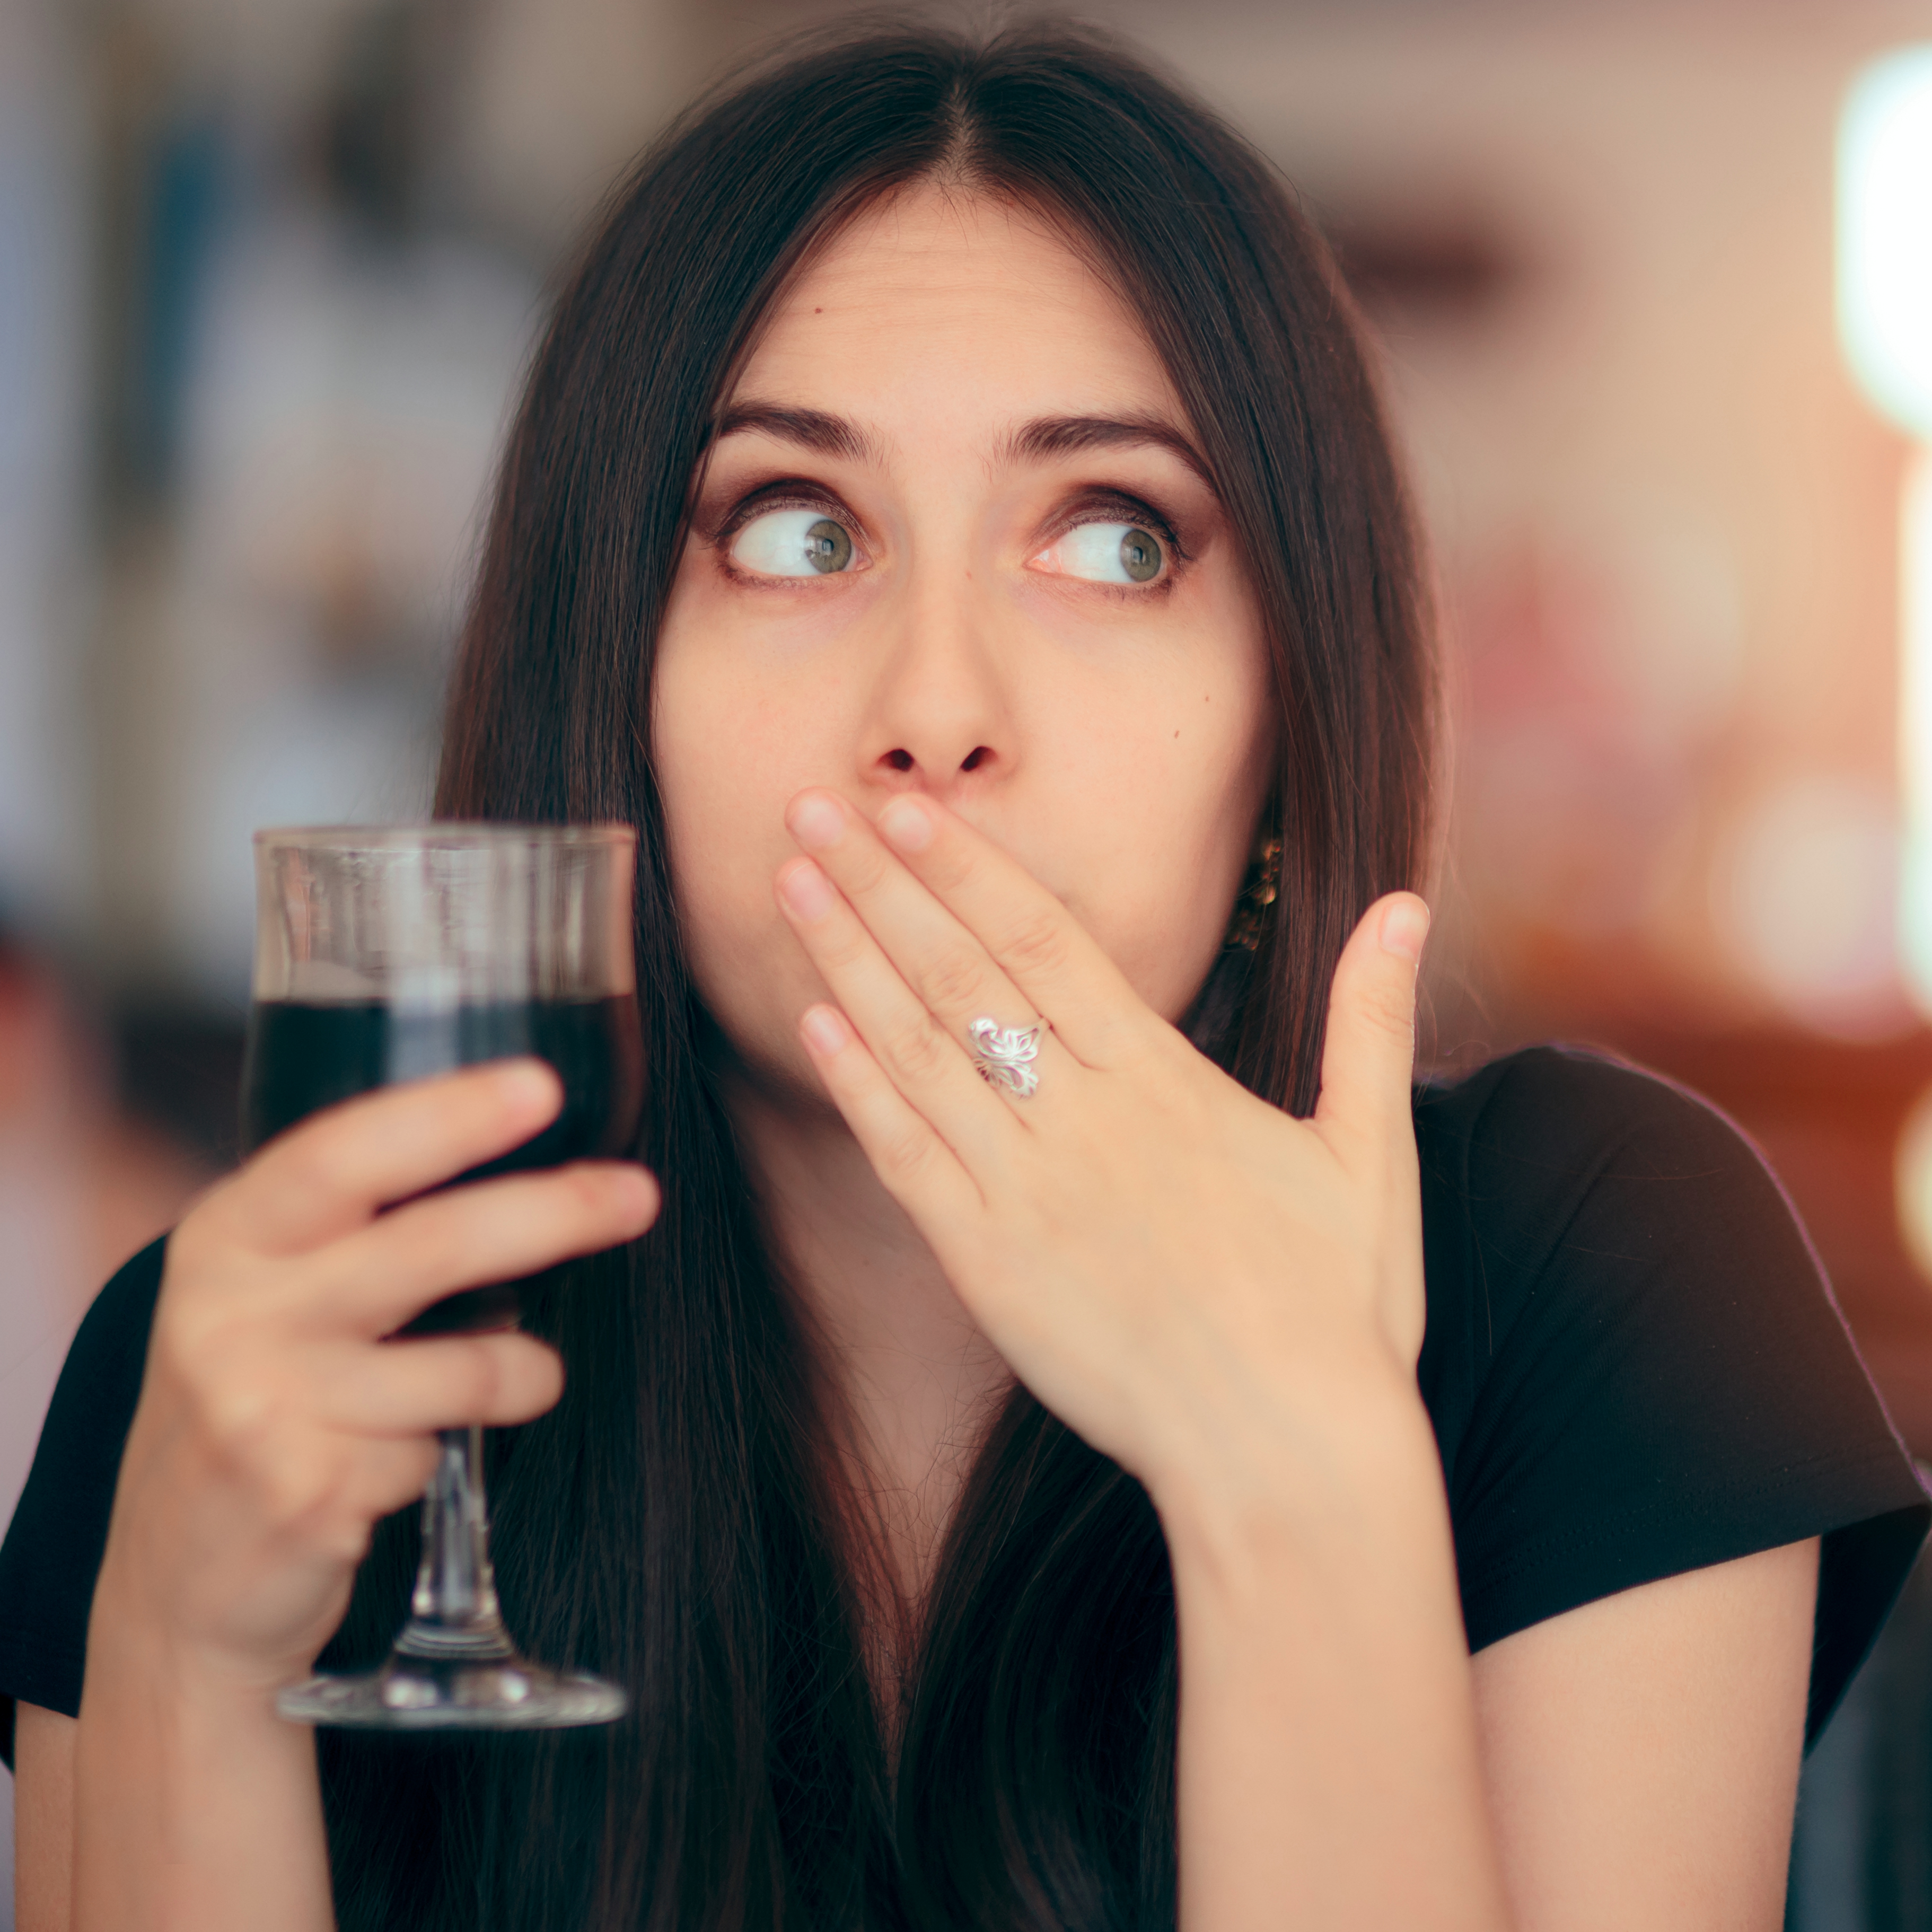 a woman holding a glass with soda or wine and covering her mouth because she's burping or hiccuping, maybe feeling sick